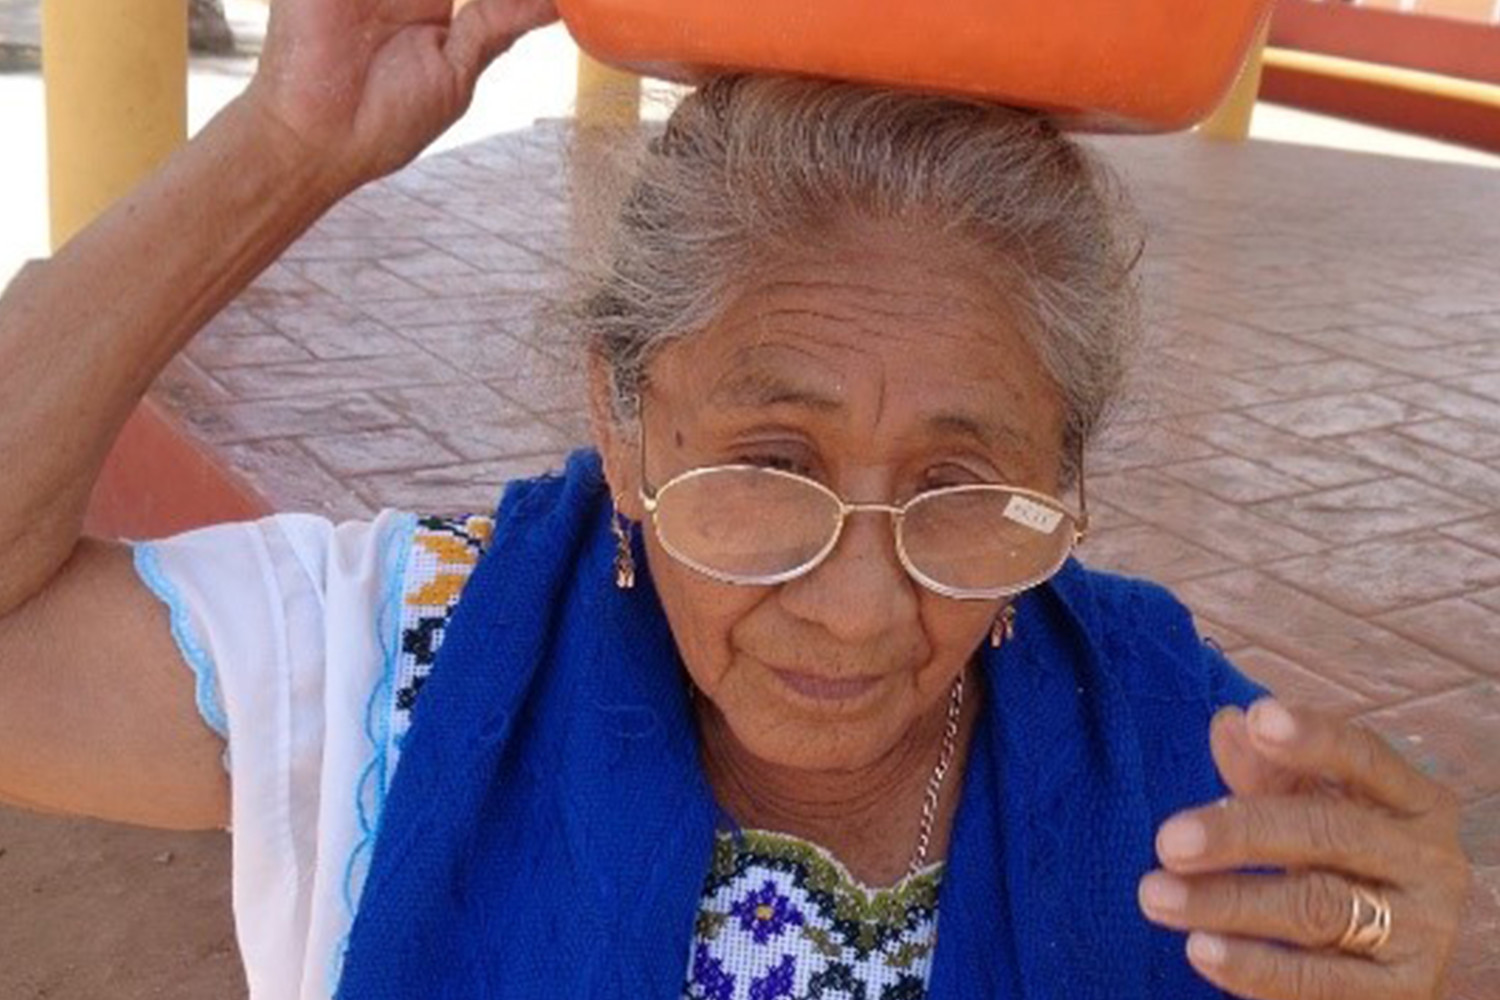 A woman in a village near Merida experiences clearer sight while trying on a pair of